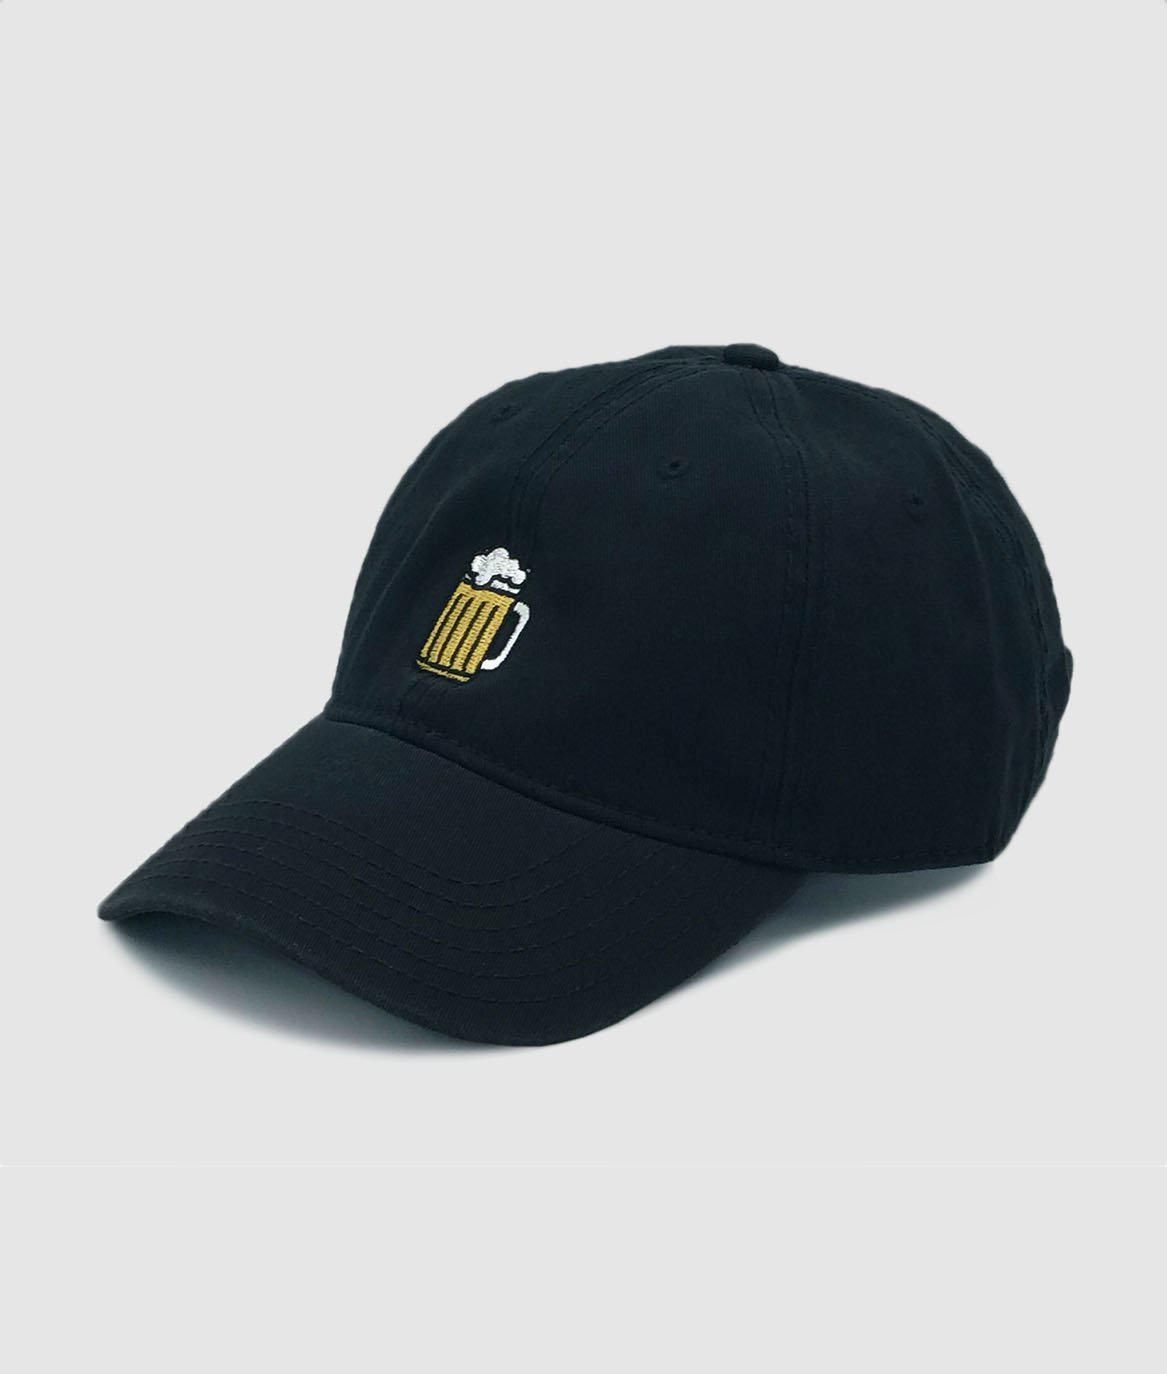 67a1661f2d36f8 Beer Stein Embroidered Dad Hat in 2019 | Products | Hats, Dad hats ...